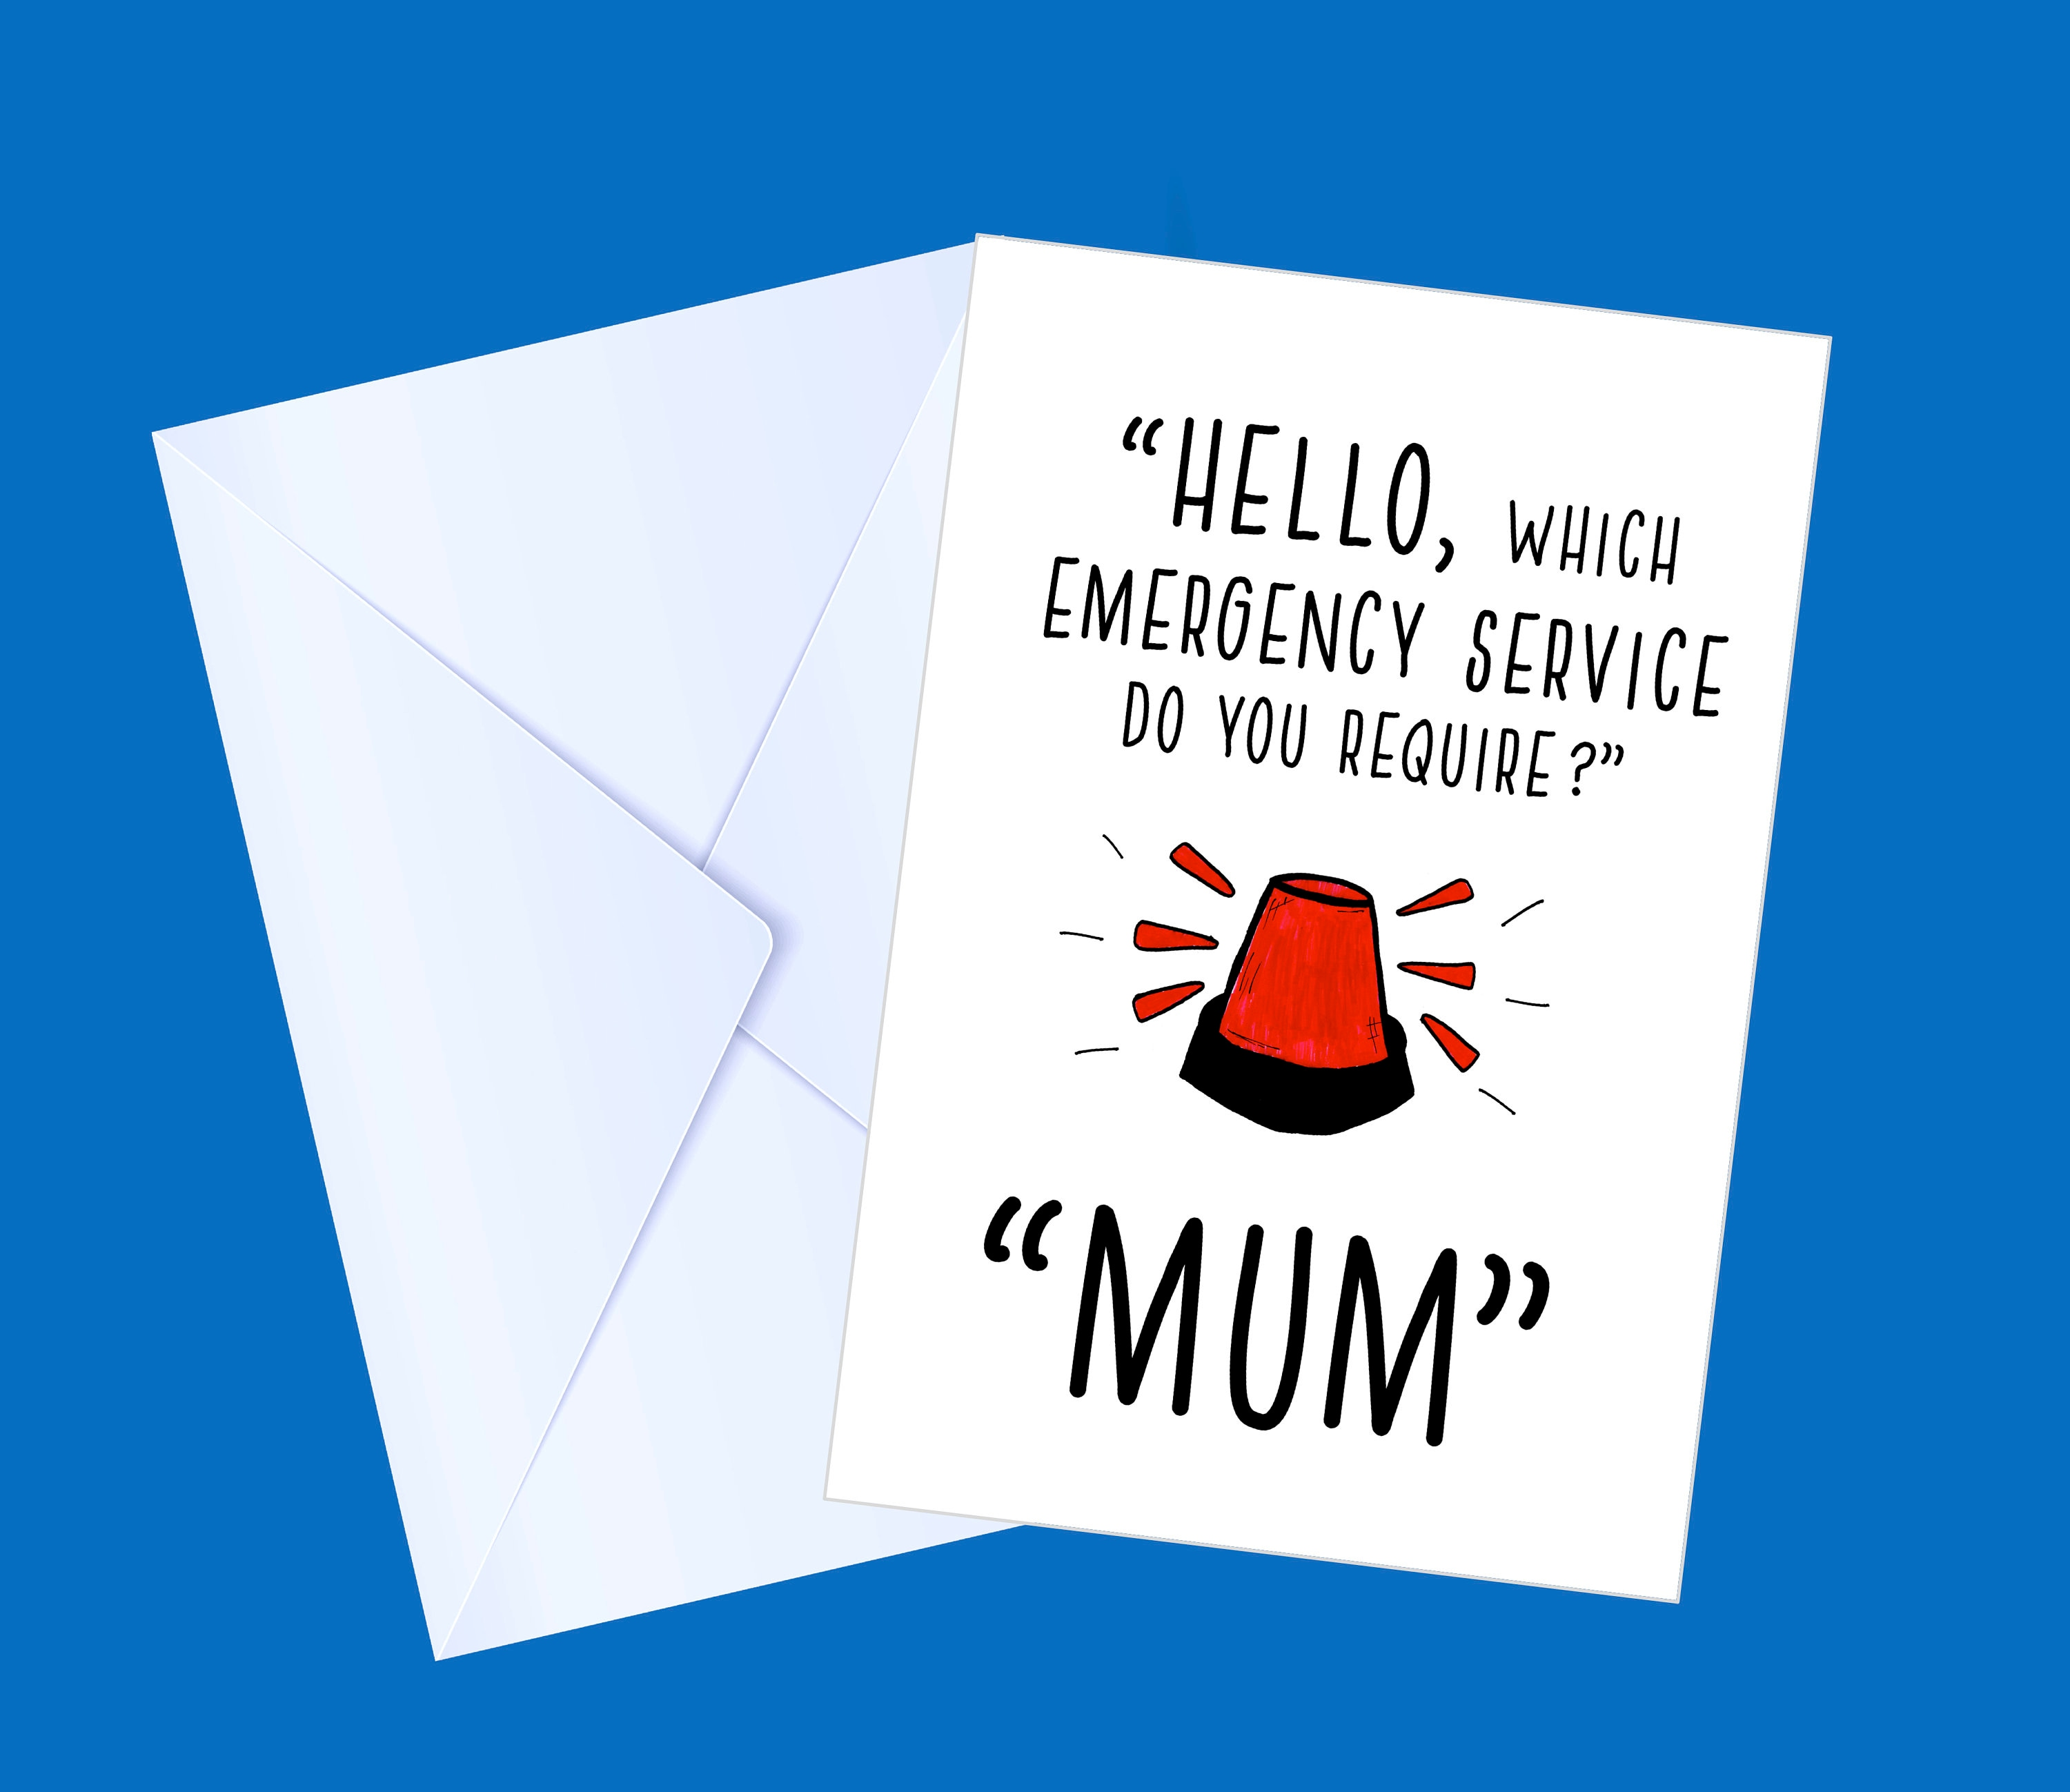 Birthday Card For Mum Birthday Cards For Her Funny Cards Humorous Cards Step Mum Handmade Card Homemade Card Family